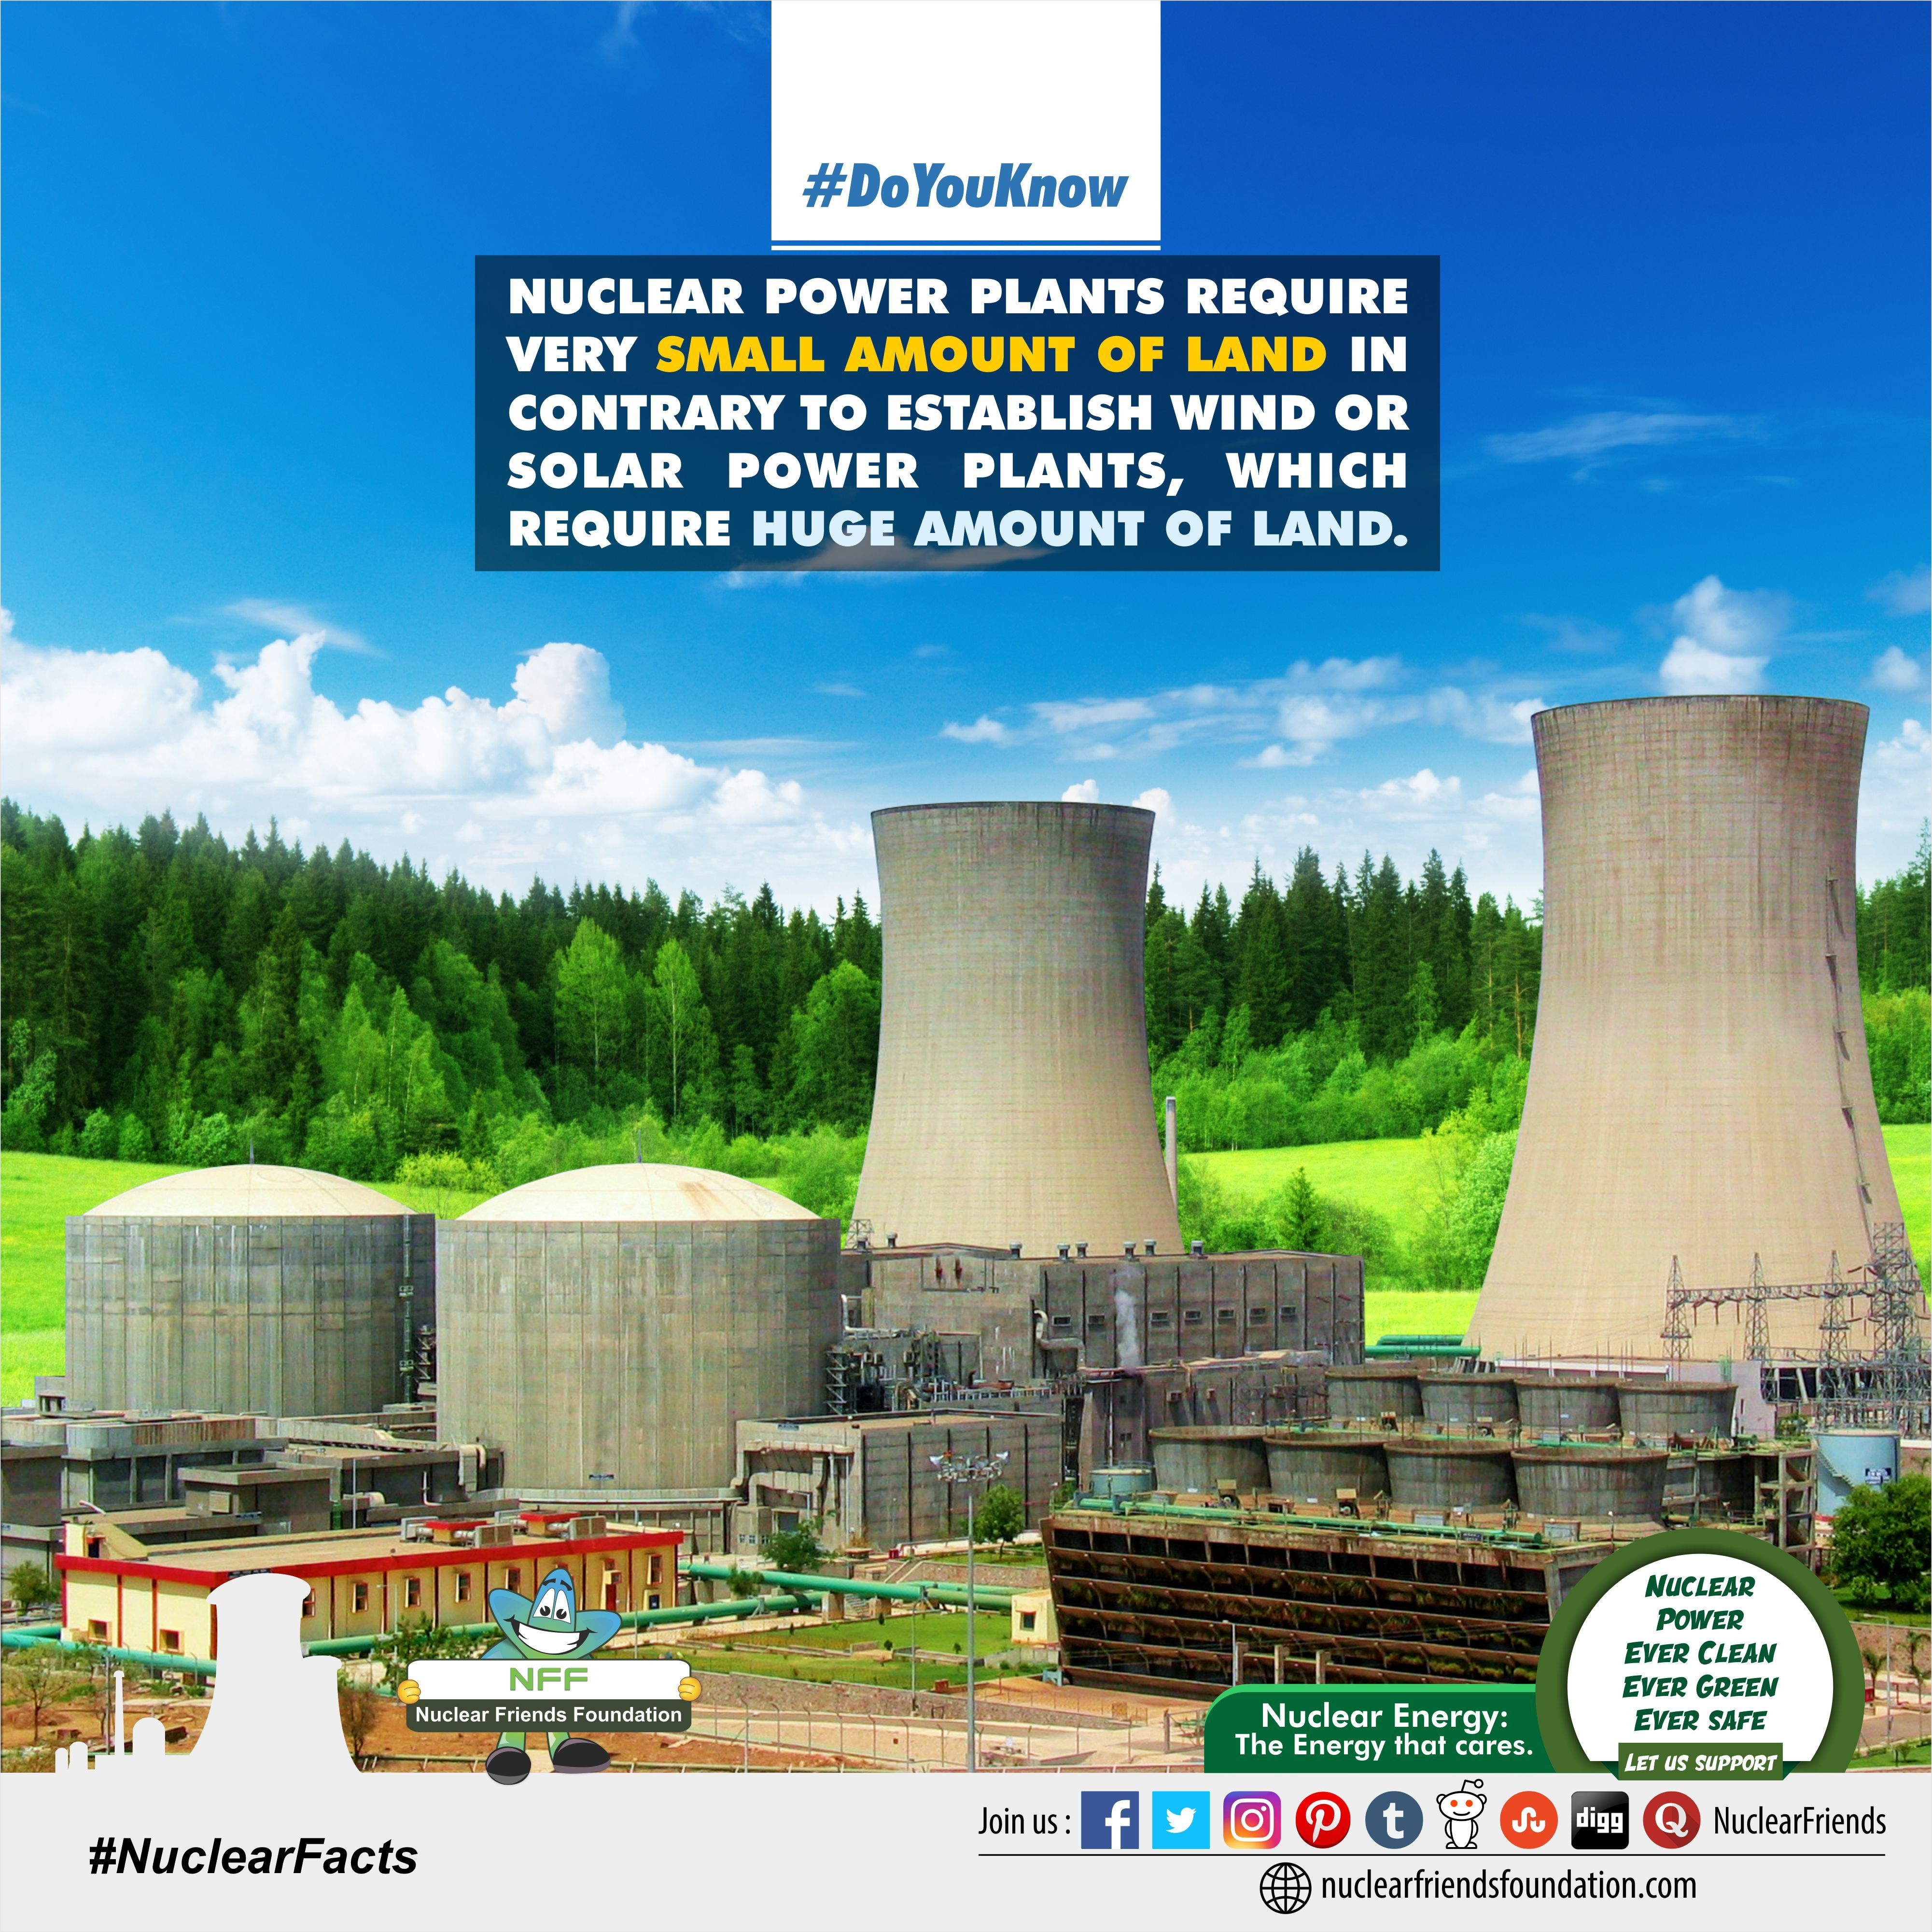 Doyouknow Nuclear Power Plants Require Very Small Amount Of Land In Contrary To Establish Wind Or Solar P Nuclear Power Plant Solar Power Plant Nuclear Energy